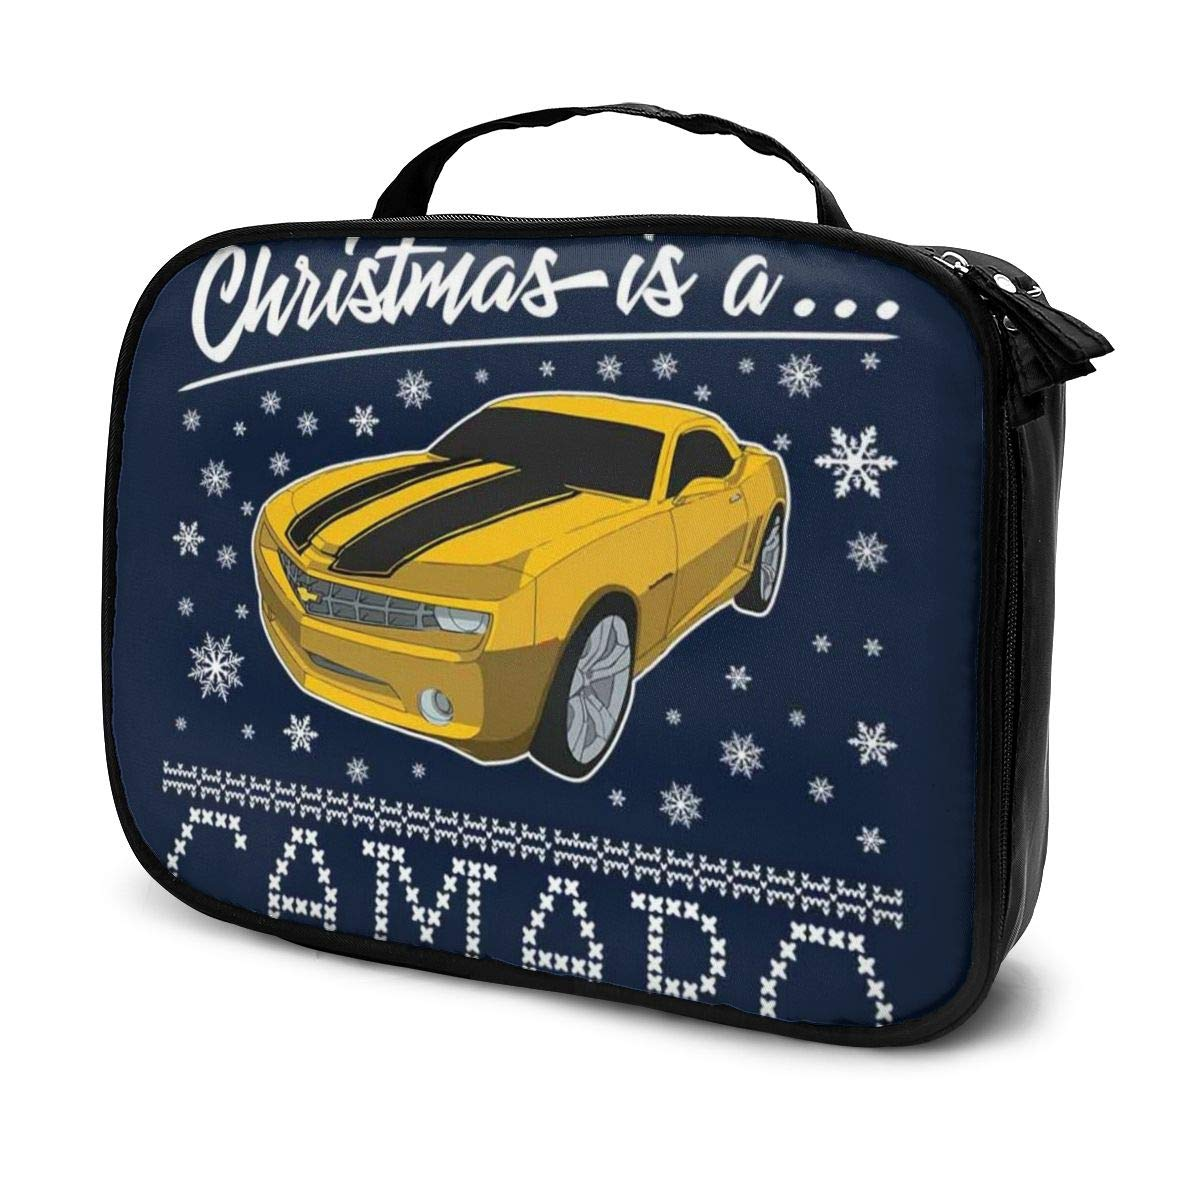 Multi-Functional Bag With Compartments All I Want For Christmas Is A Camaro Professional Cosmetic Pouch Travel Kit Makeup Boxes Makeup Bag